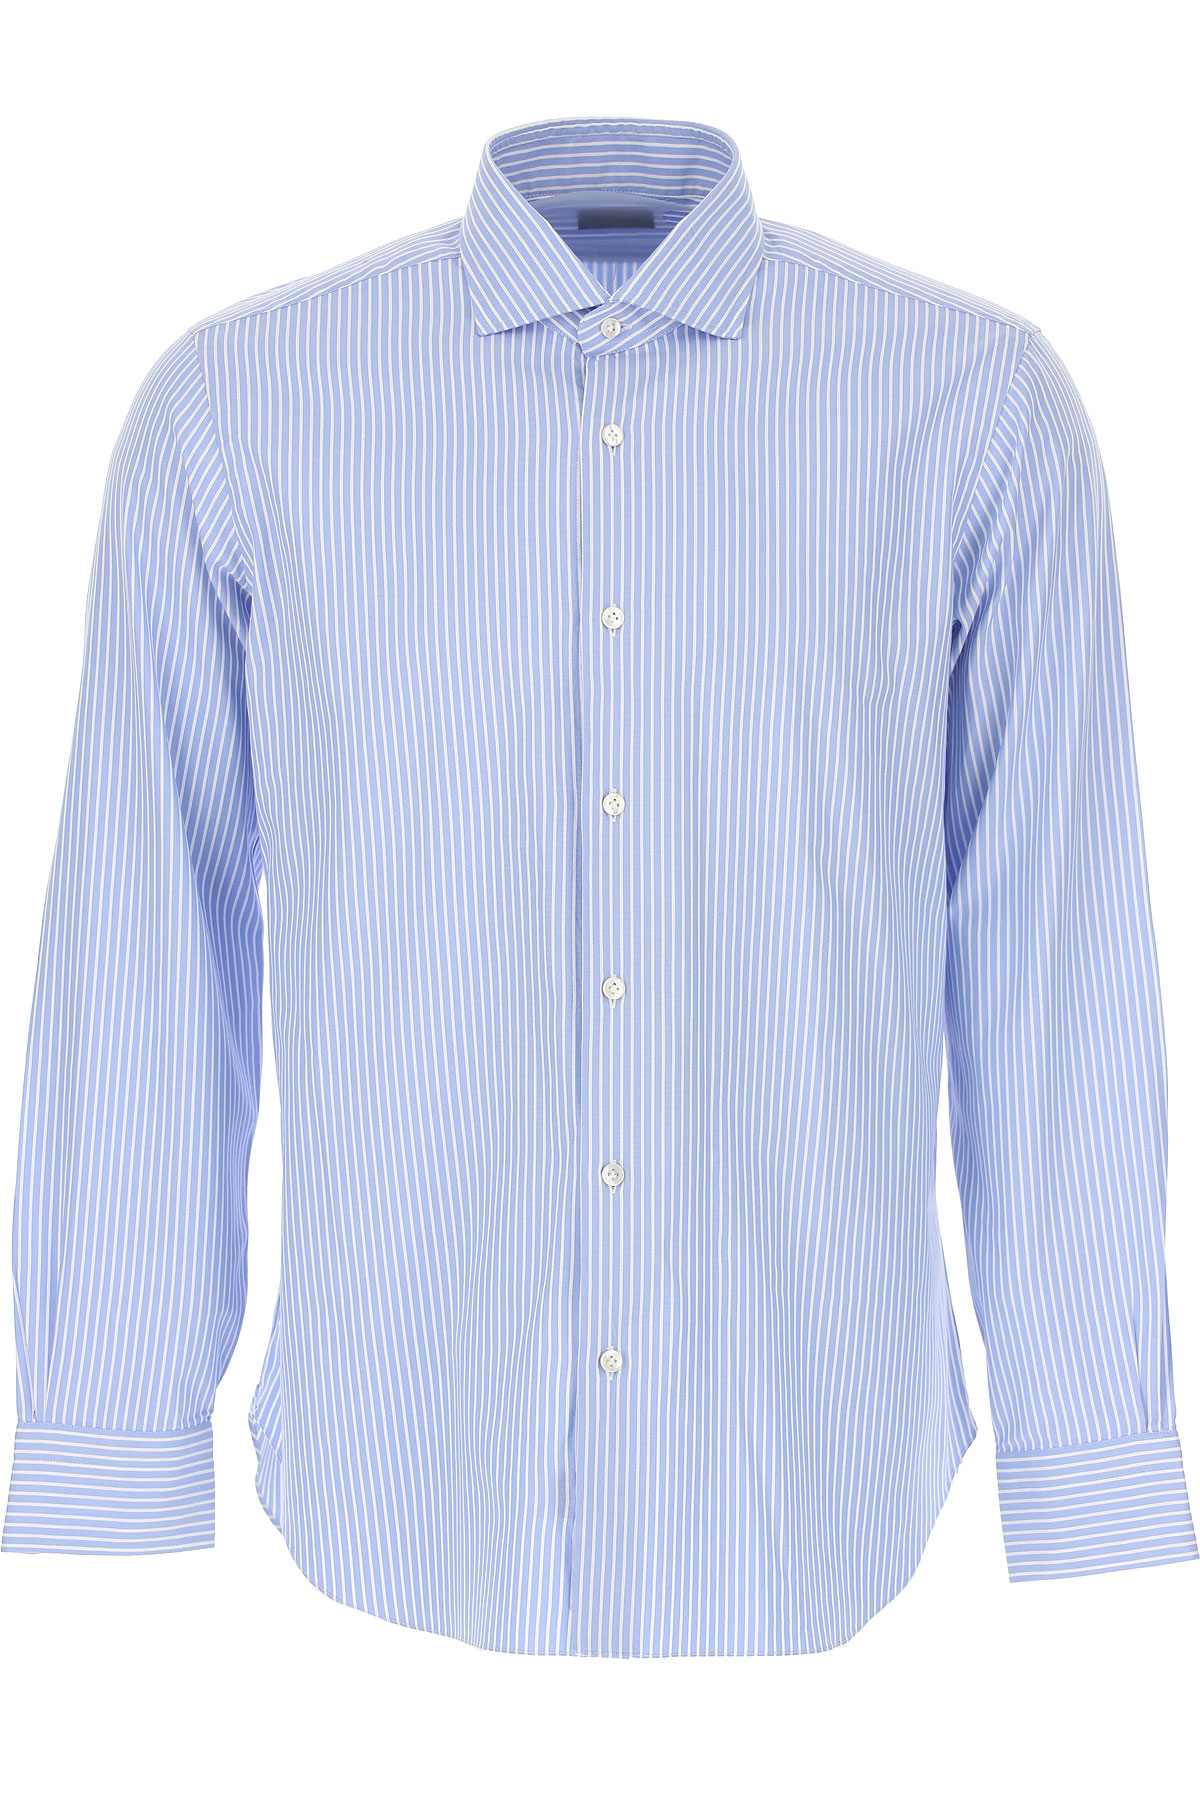 Barba Shirt for Men On Sale in Outlet, Light Blue, Cotton, 2019, 16.5 17 17.5